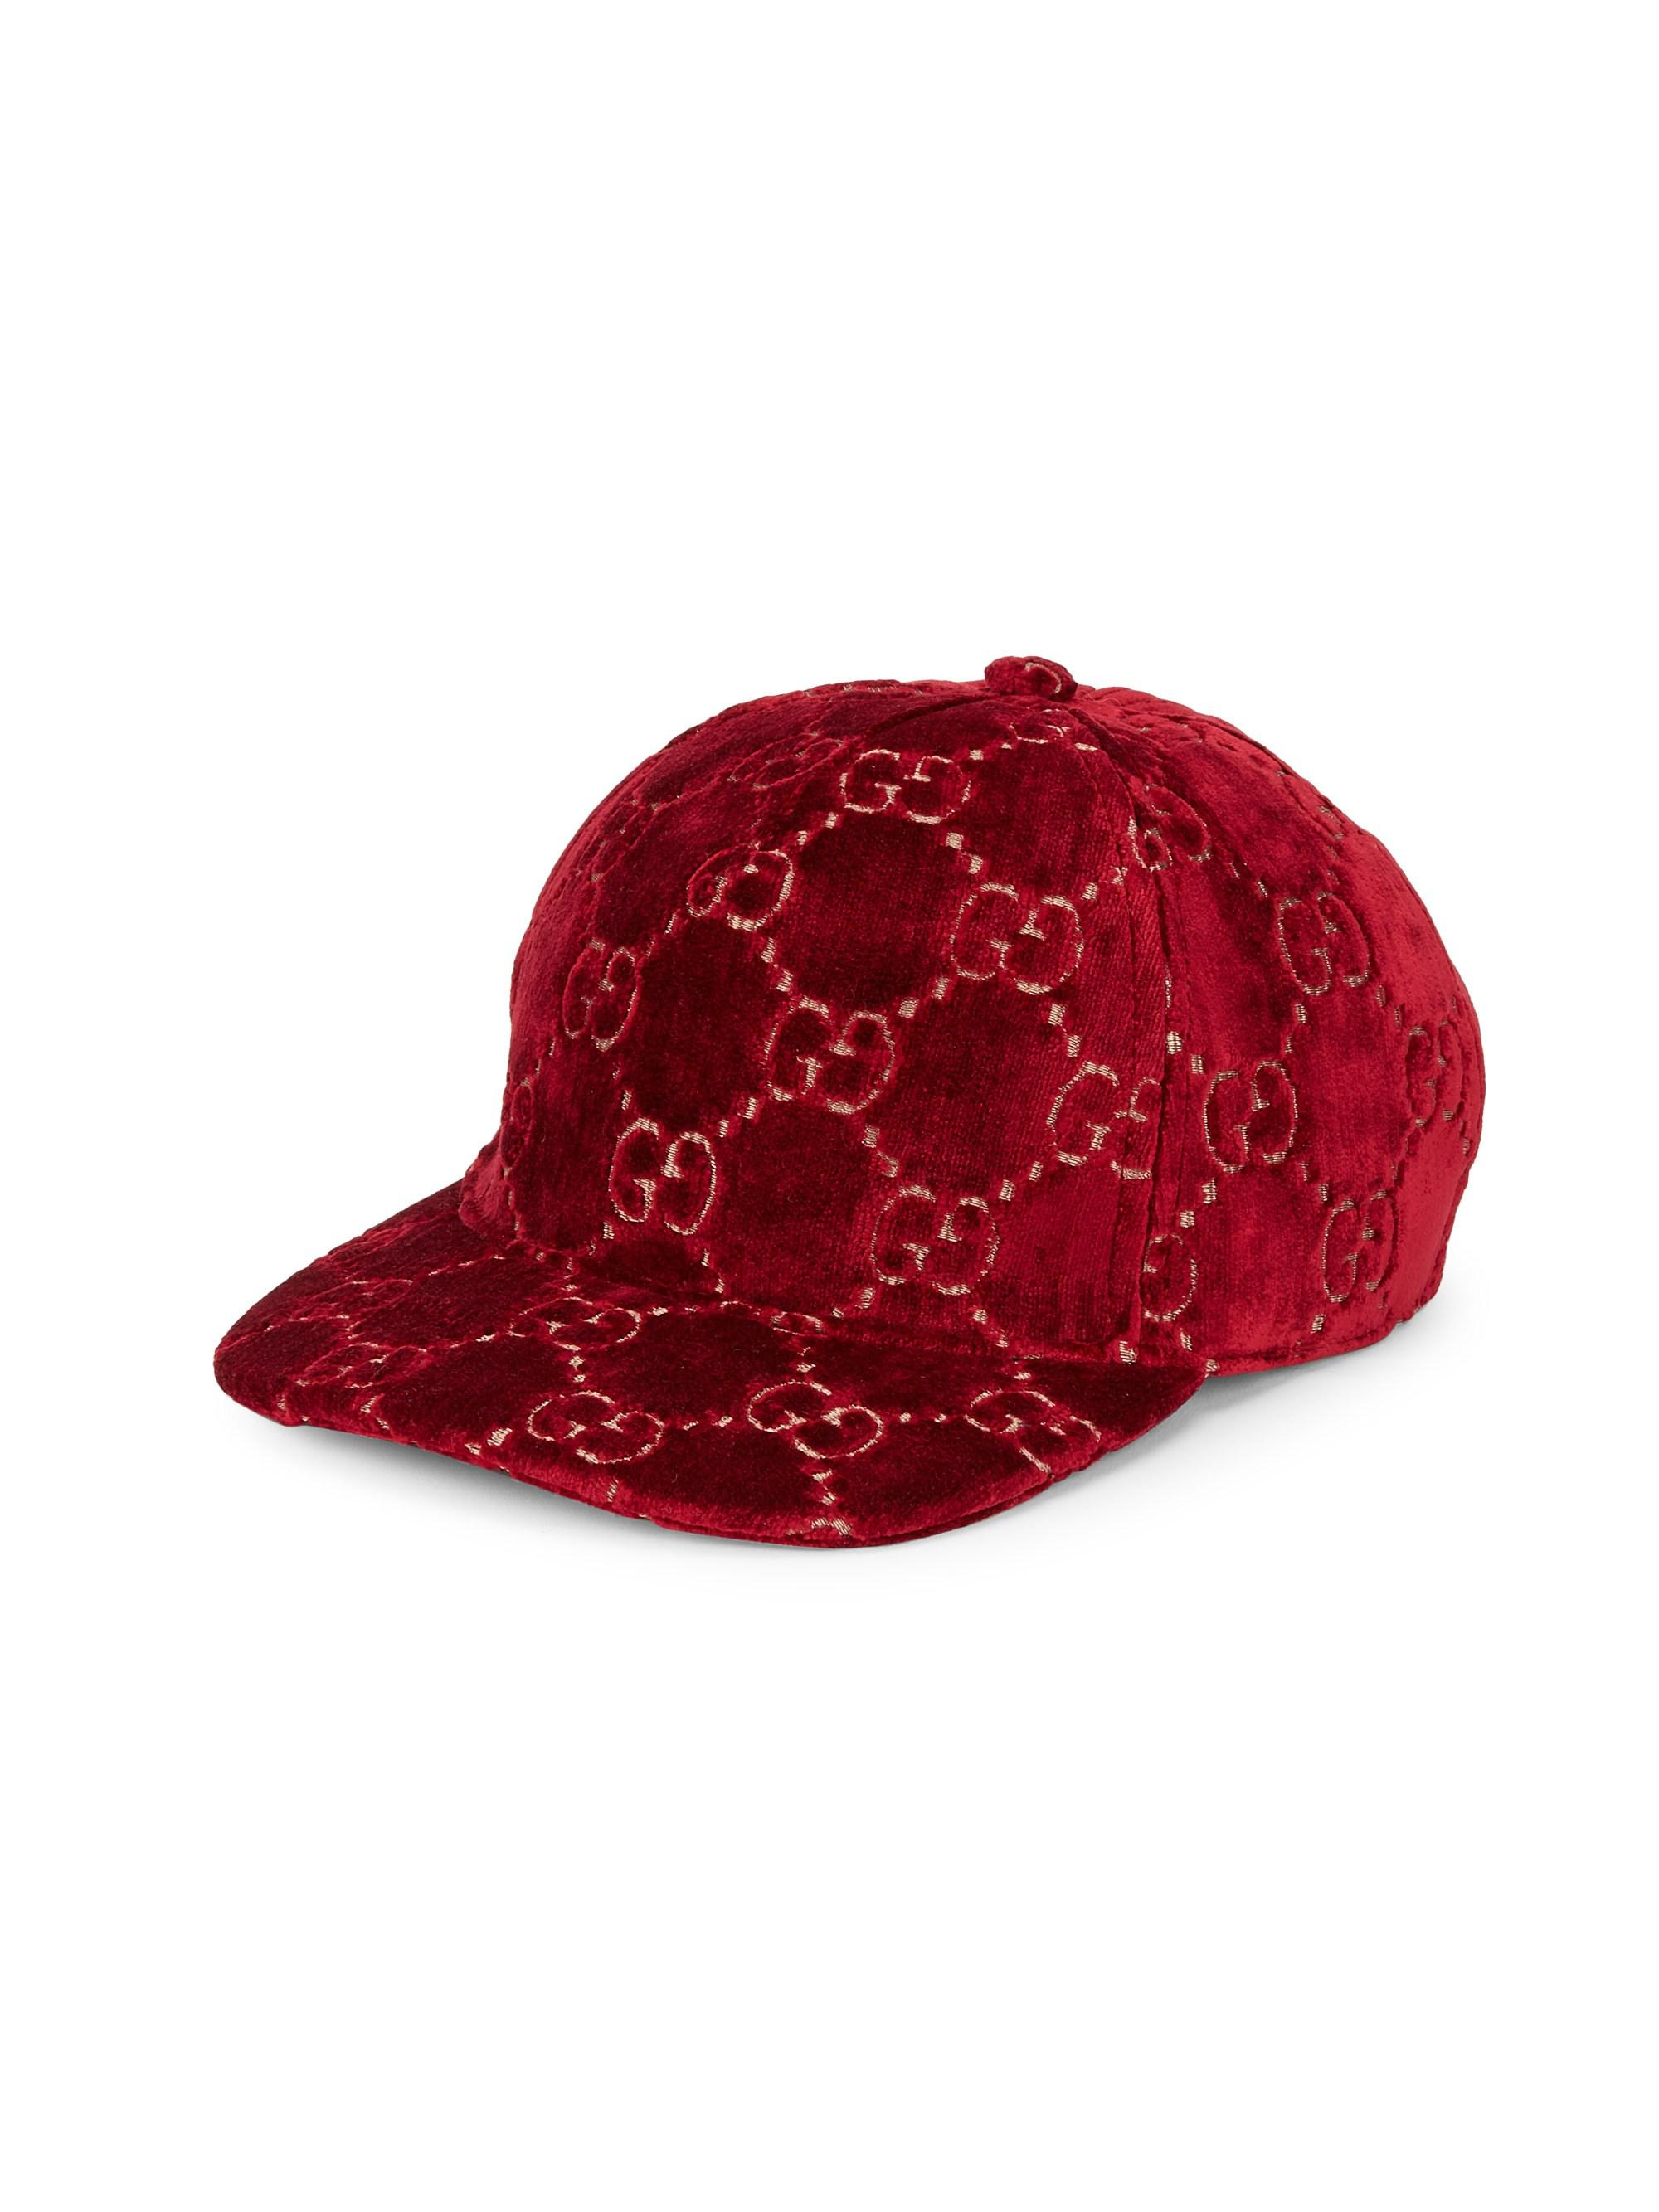 556537d05fd28 Gucci GG Velvet Baseball Cap in Red - Save 31% - Lyst